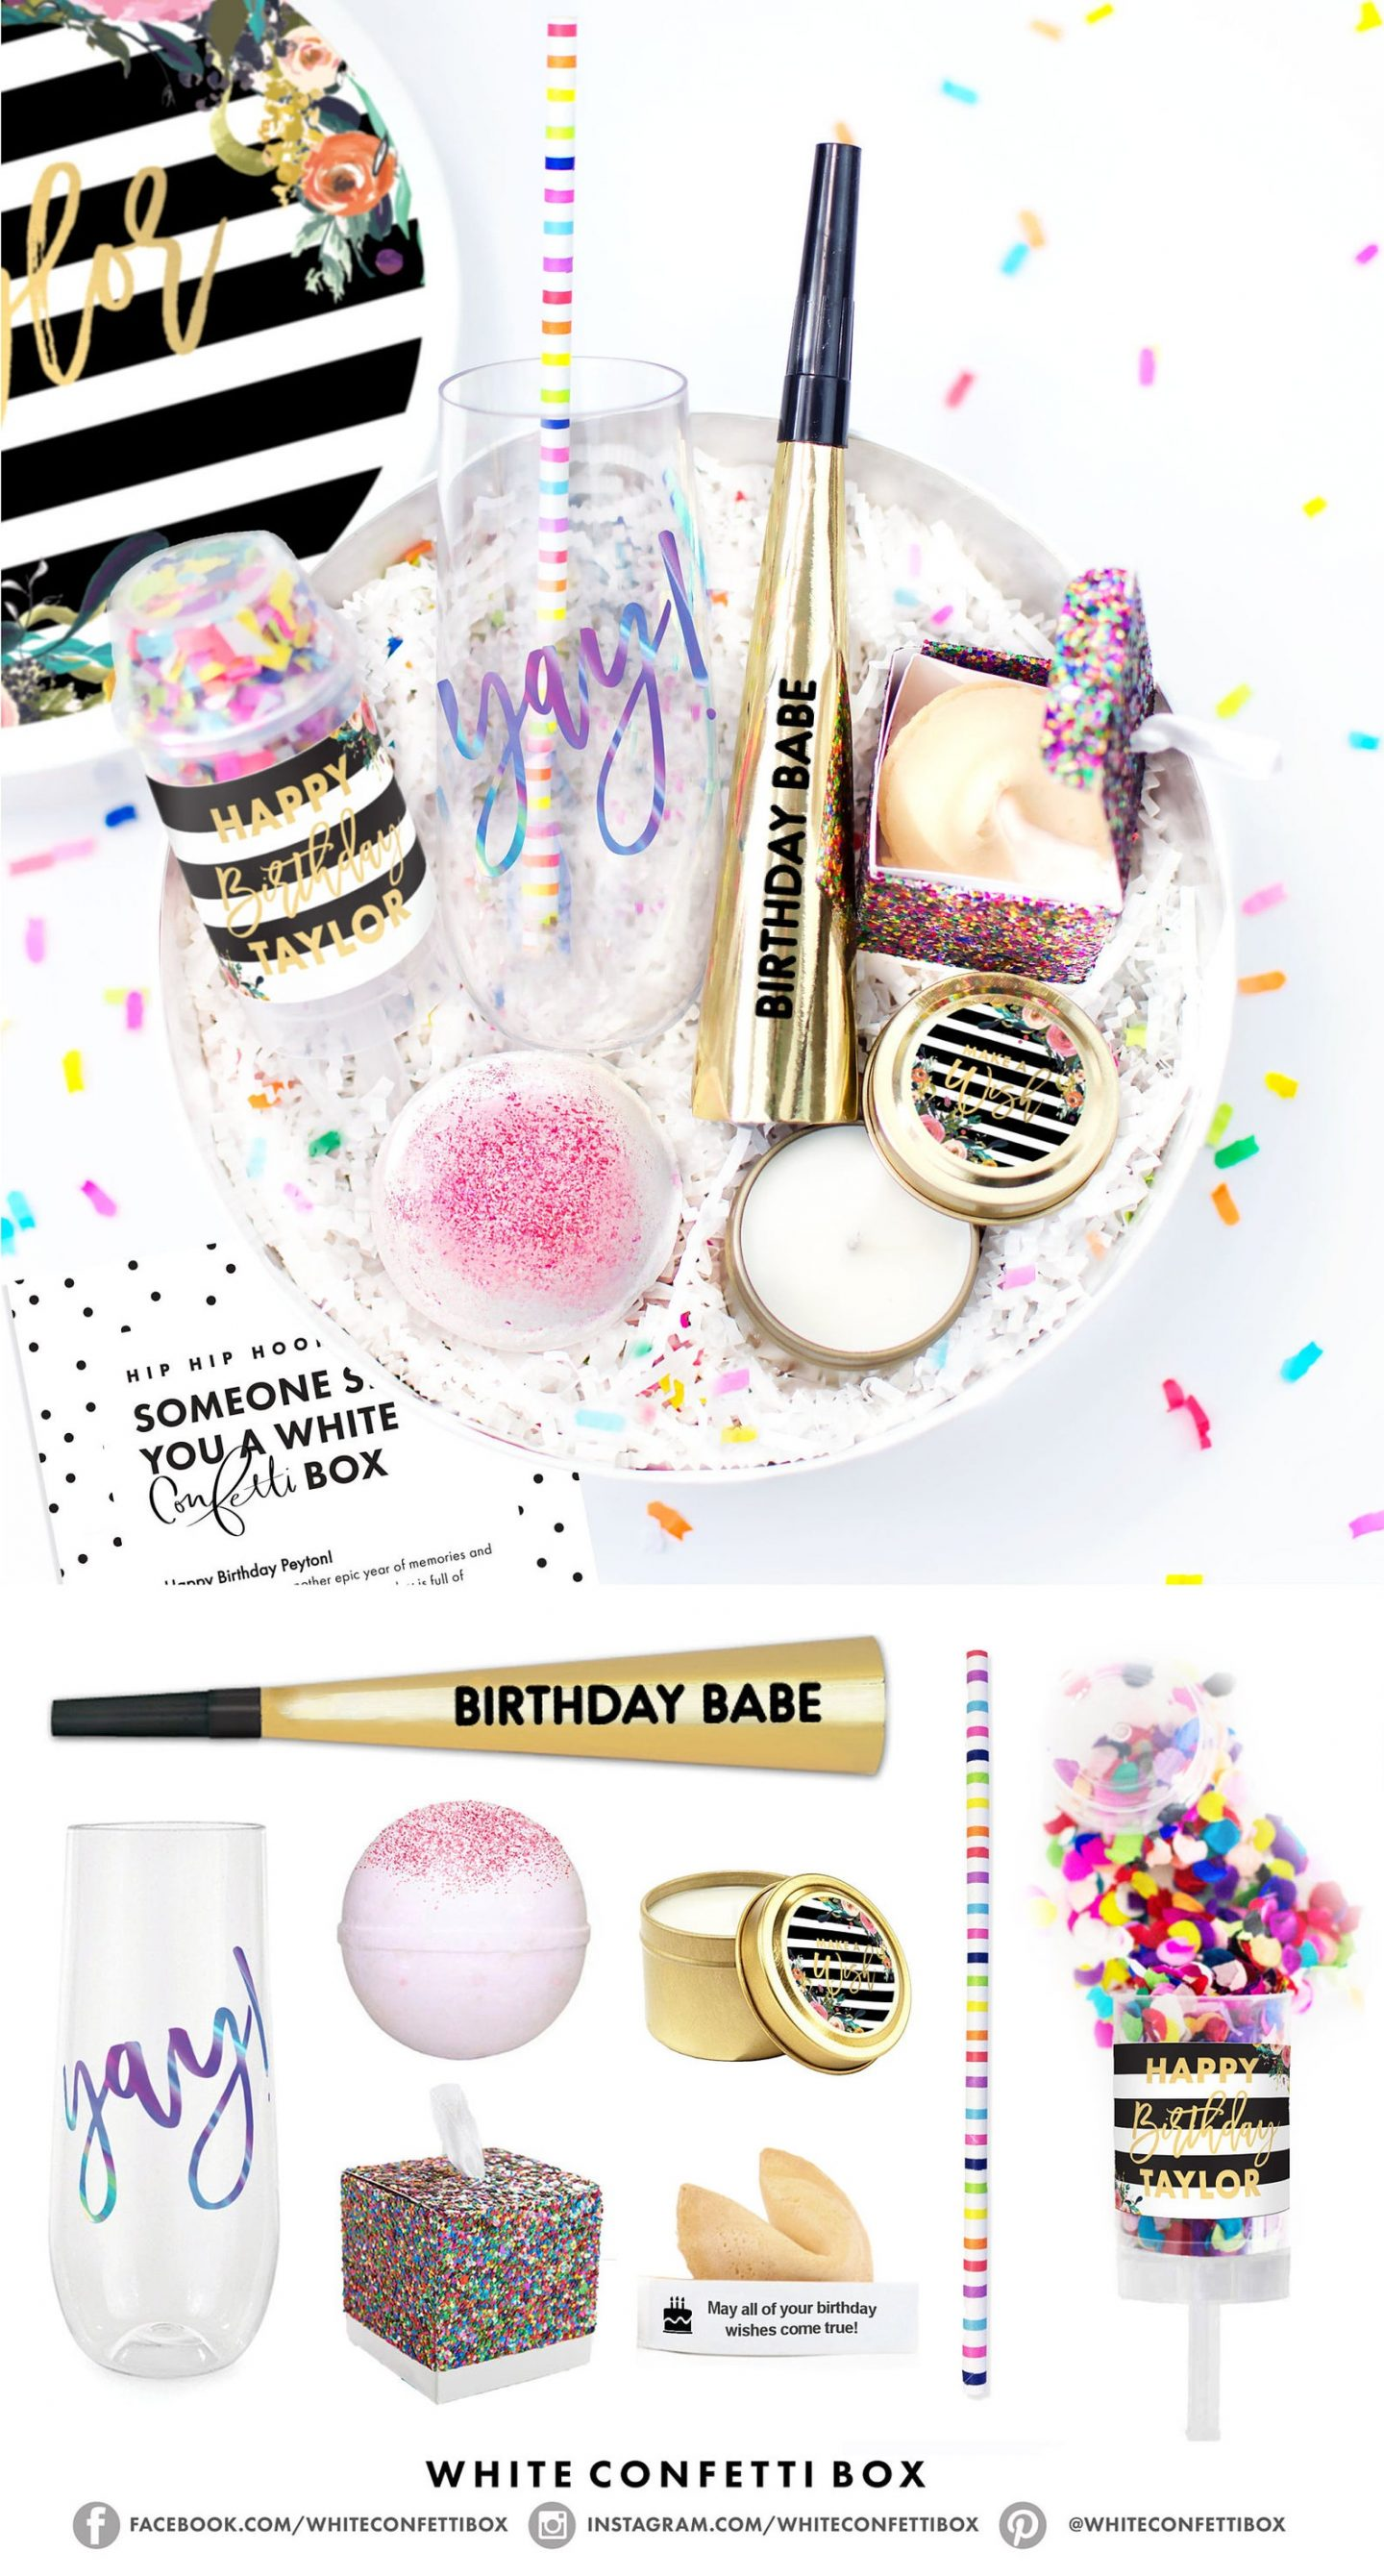 Cute birthday party bowl with confetti, glasses and poppers